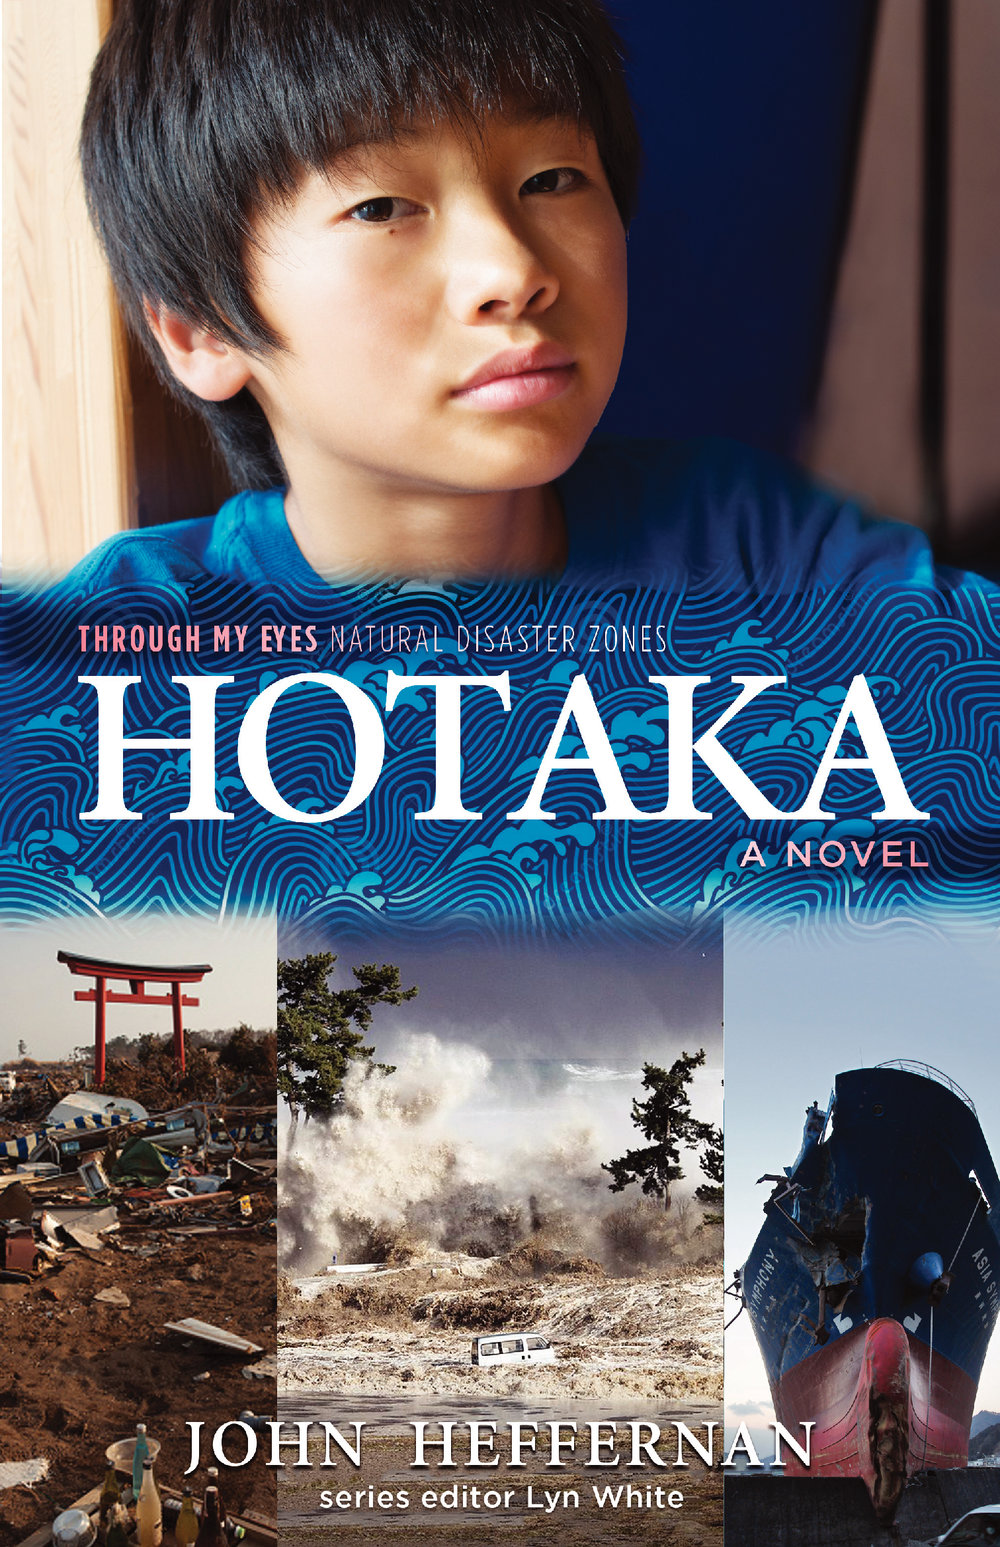 "HOTAKA is the first book in the second Through My Eyes series from Allen & Unwin that examines natural disasters - a starkly realistic novel about the Japanese tsunami of March, 2011. It explores the impact of the disaster on one teenage boy, the introspective Hotaka, and to a lesser degree on his two best friends, feisty Sakura and tech-head Osamu. In doing this, the book also examines the huge social impact of the disaster on Hotaka's once beautiful little town of Omori-wan, utterly destroyed by the wave.  This is an uplifting book about hope and resilience in the face of loss, grief and tragedy, about the need people have for each other in times of adversity. On one level it is a simple human story of a boy facing the truth. Yet it is also a melding of many individual stories. In its broadest sense, HOTAKA is a tribute to the people of the Tohoku region for their amazing strength and capacity to help each other rise from the ashes and rebuild their lives. ""I travelled to Japan to research HOTAKA, talking to a range of teenage students, as well as teachers and principals. This deepened my grasp of the huge personal and social impact of the 2011 Tohoku disaster, and helped me understand some of the complexities of Japanese culture."" HOTAKA is suitable for readers from Upper Primary to Middle High School."